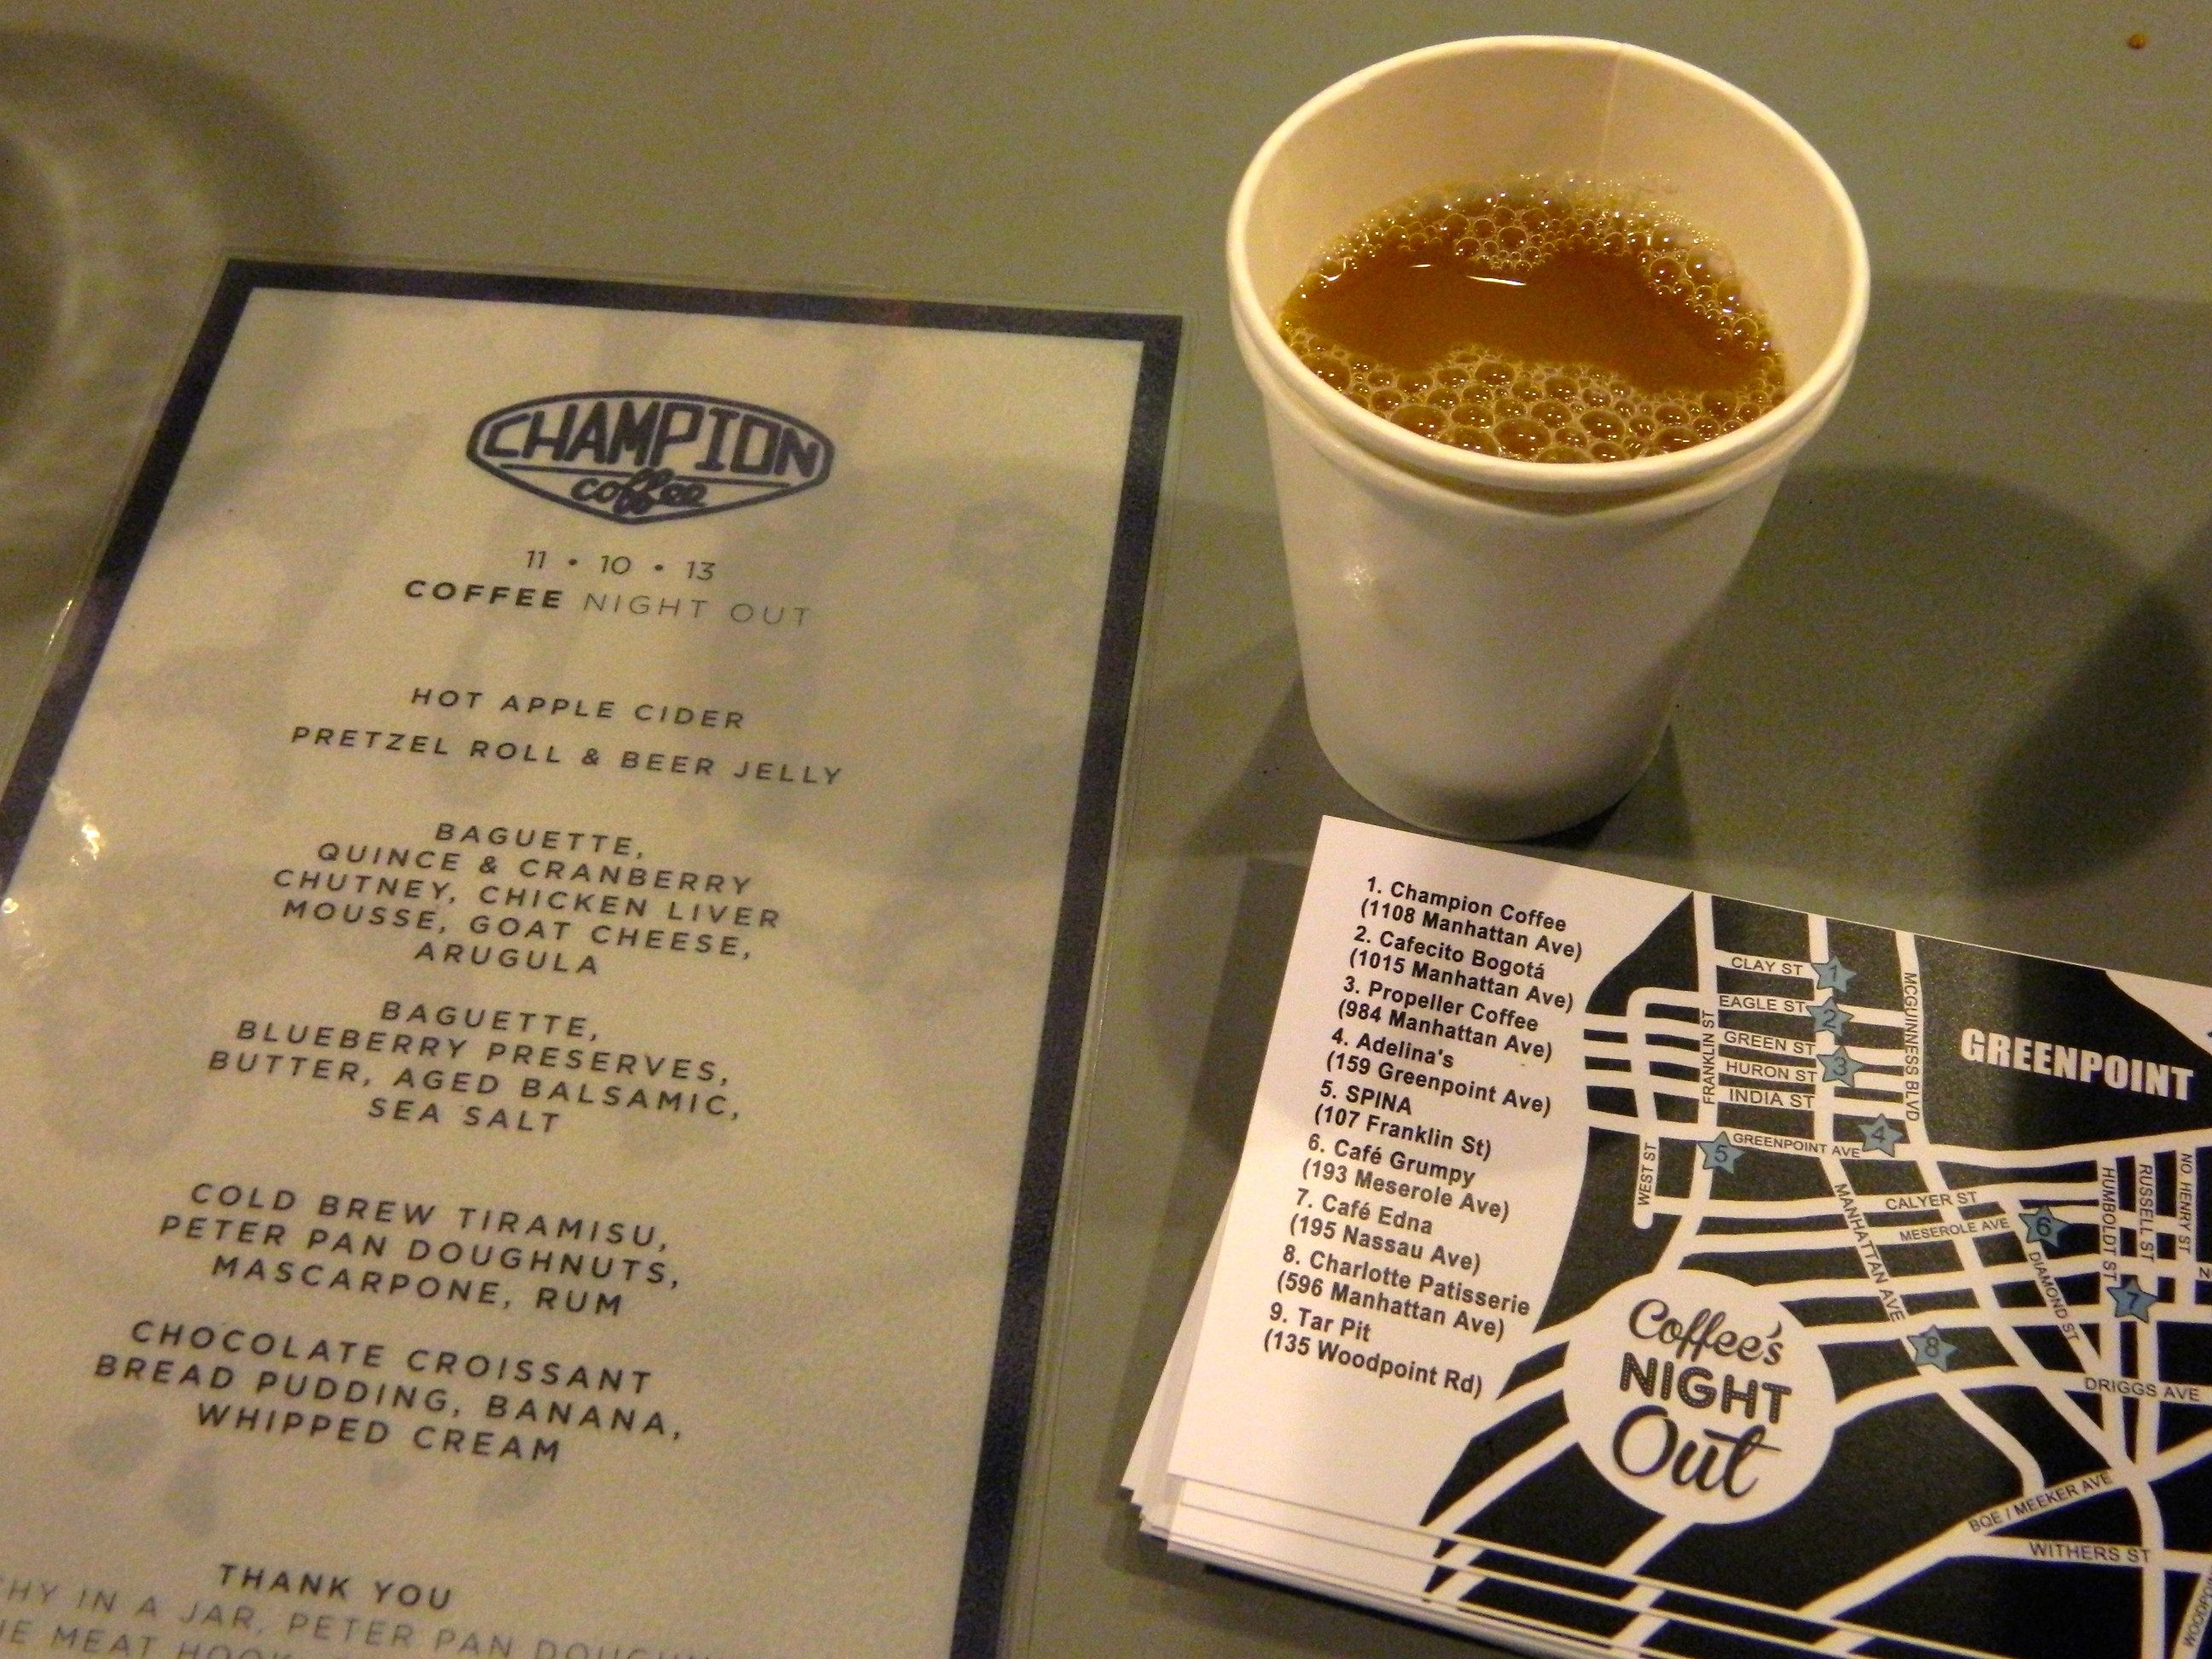 <a href=http://www.championcoffee.net/><b>Champion</b></a> (1108 Manhattan Ave) provided complimentary fall beverages, a special cider in addition to its own Champion coffee, and local treats like bread pudding made from Peter Pan doughnuts.